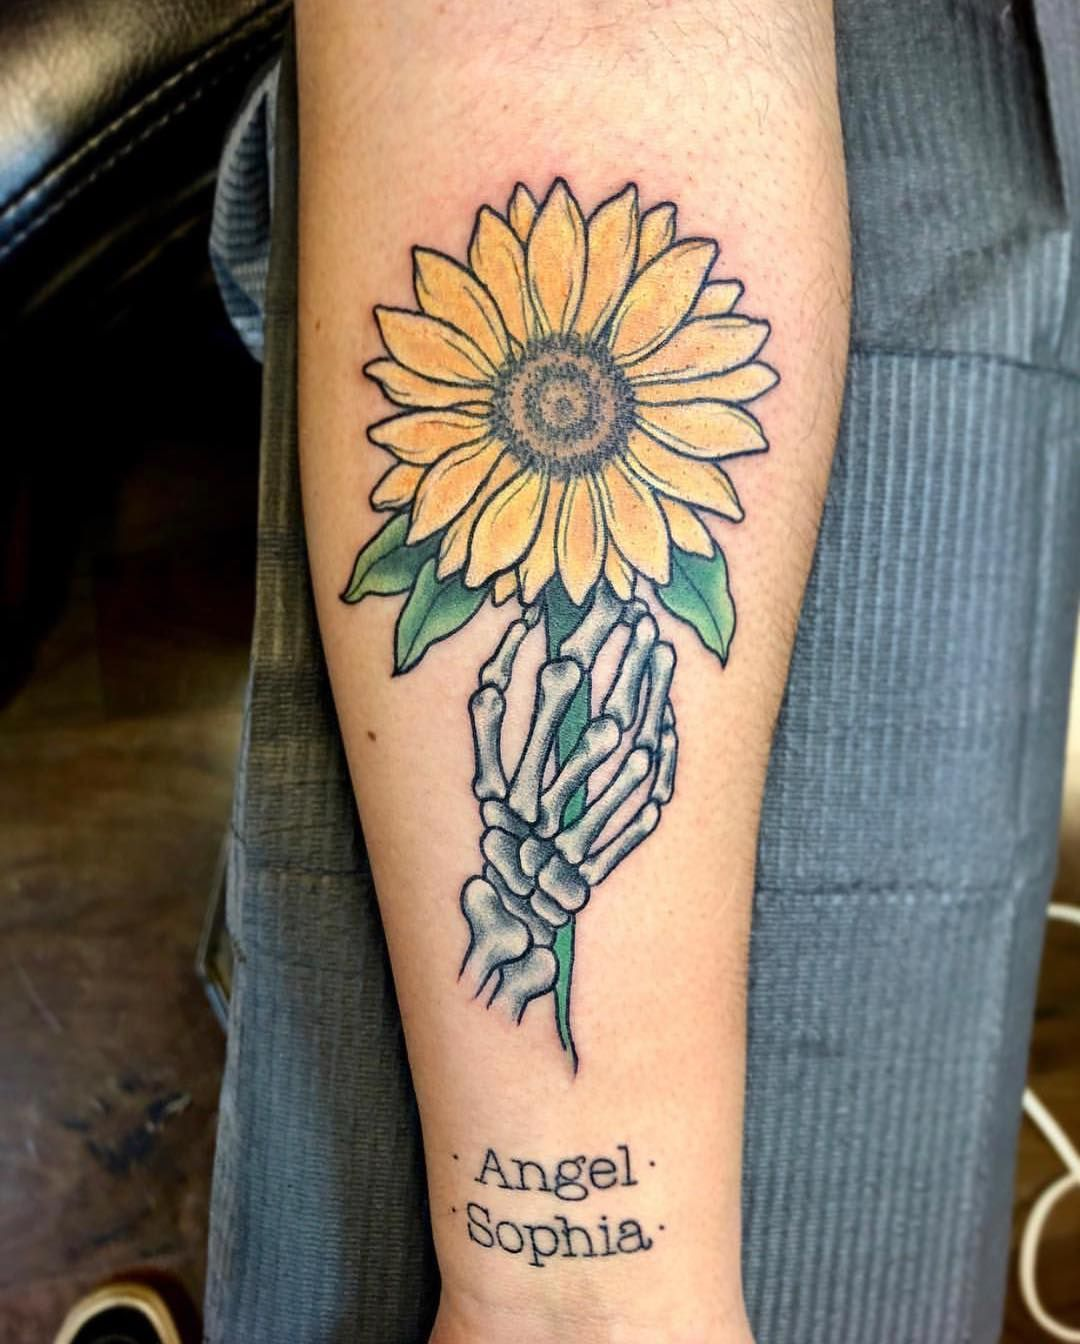 Skeleton Hand and Sunflower Tattoo Tattoo Ideas and